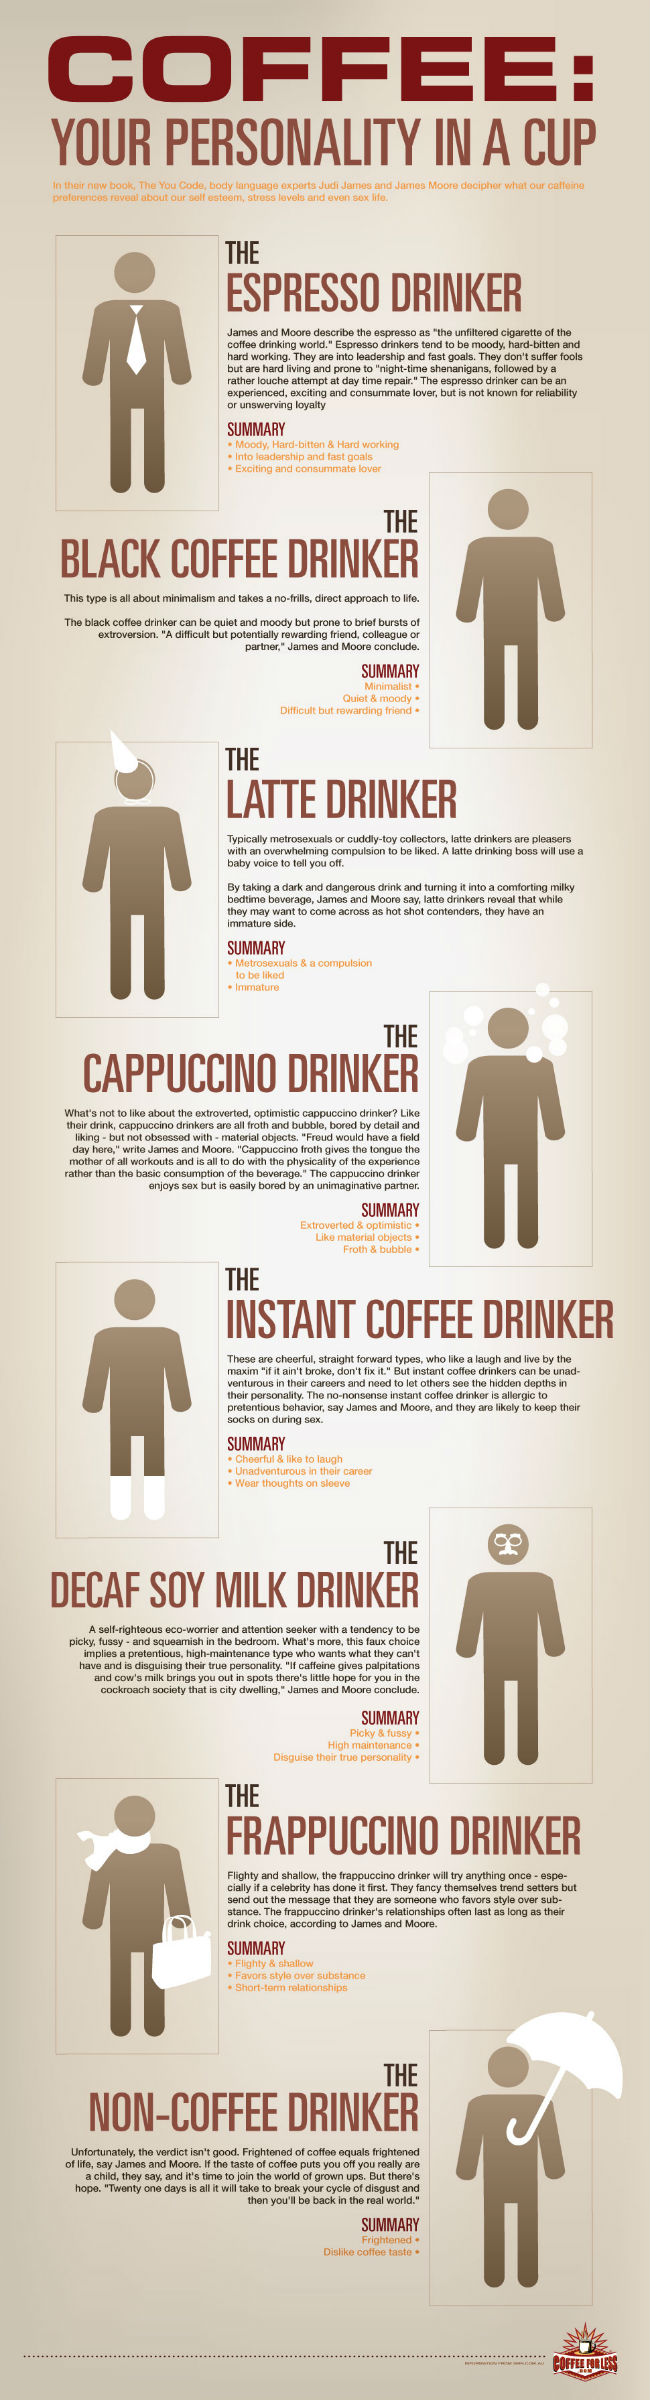 coffee-personalities